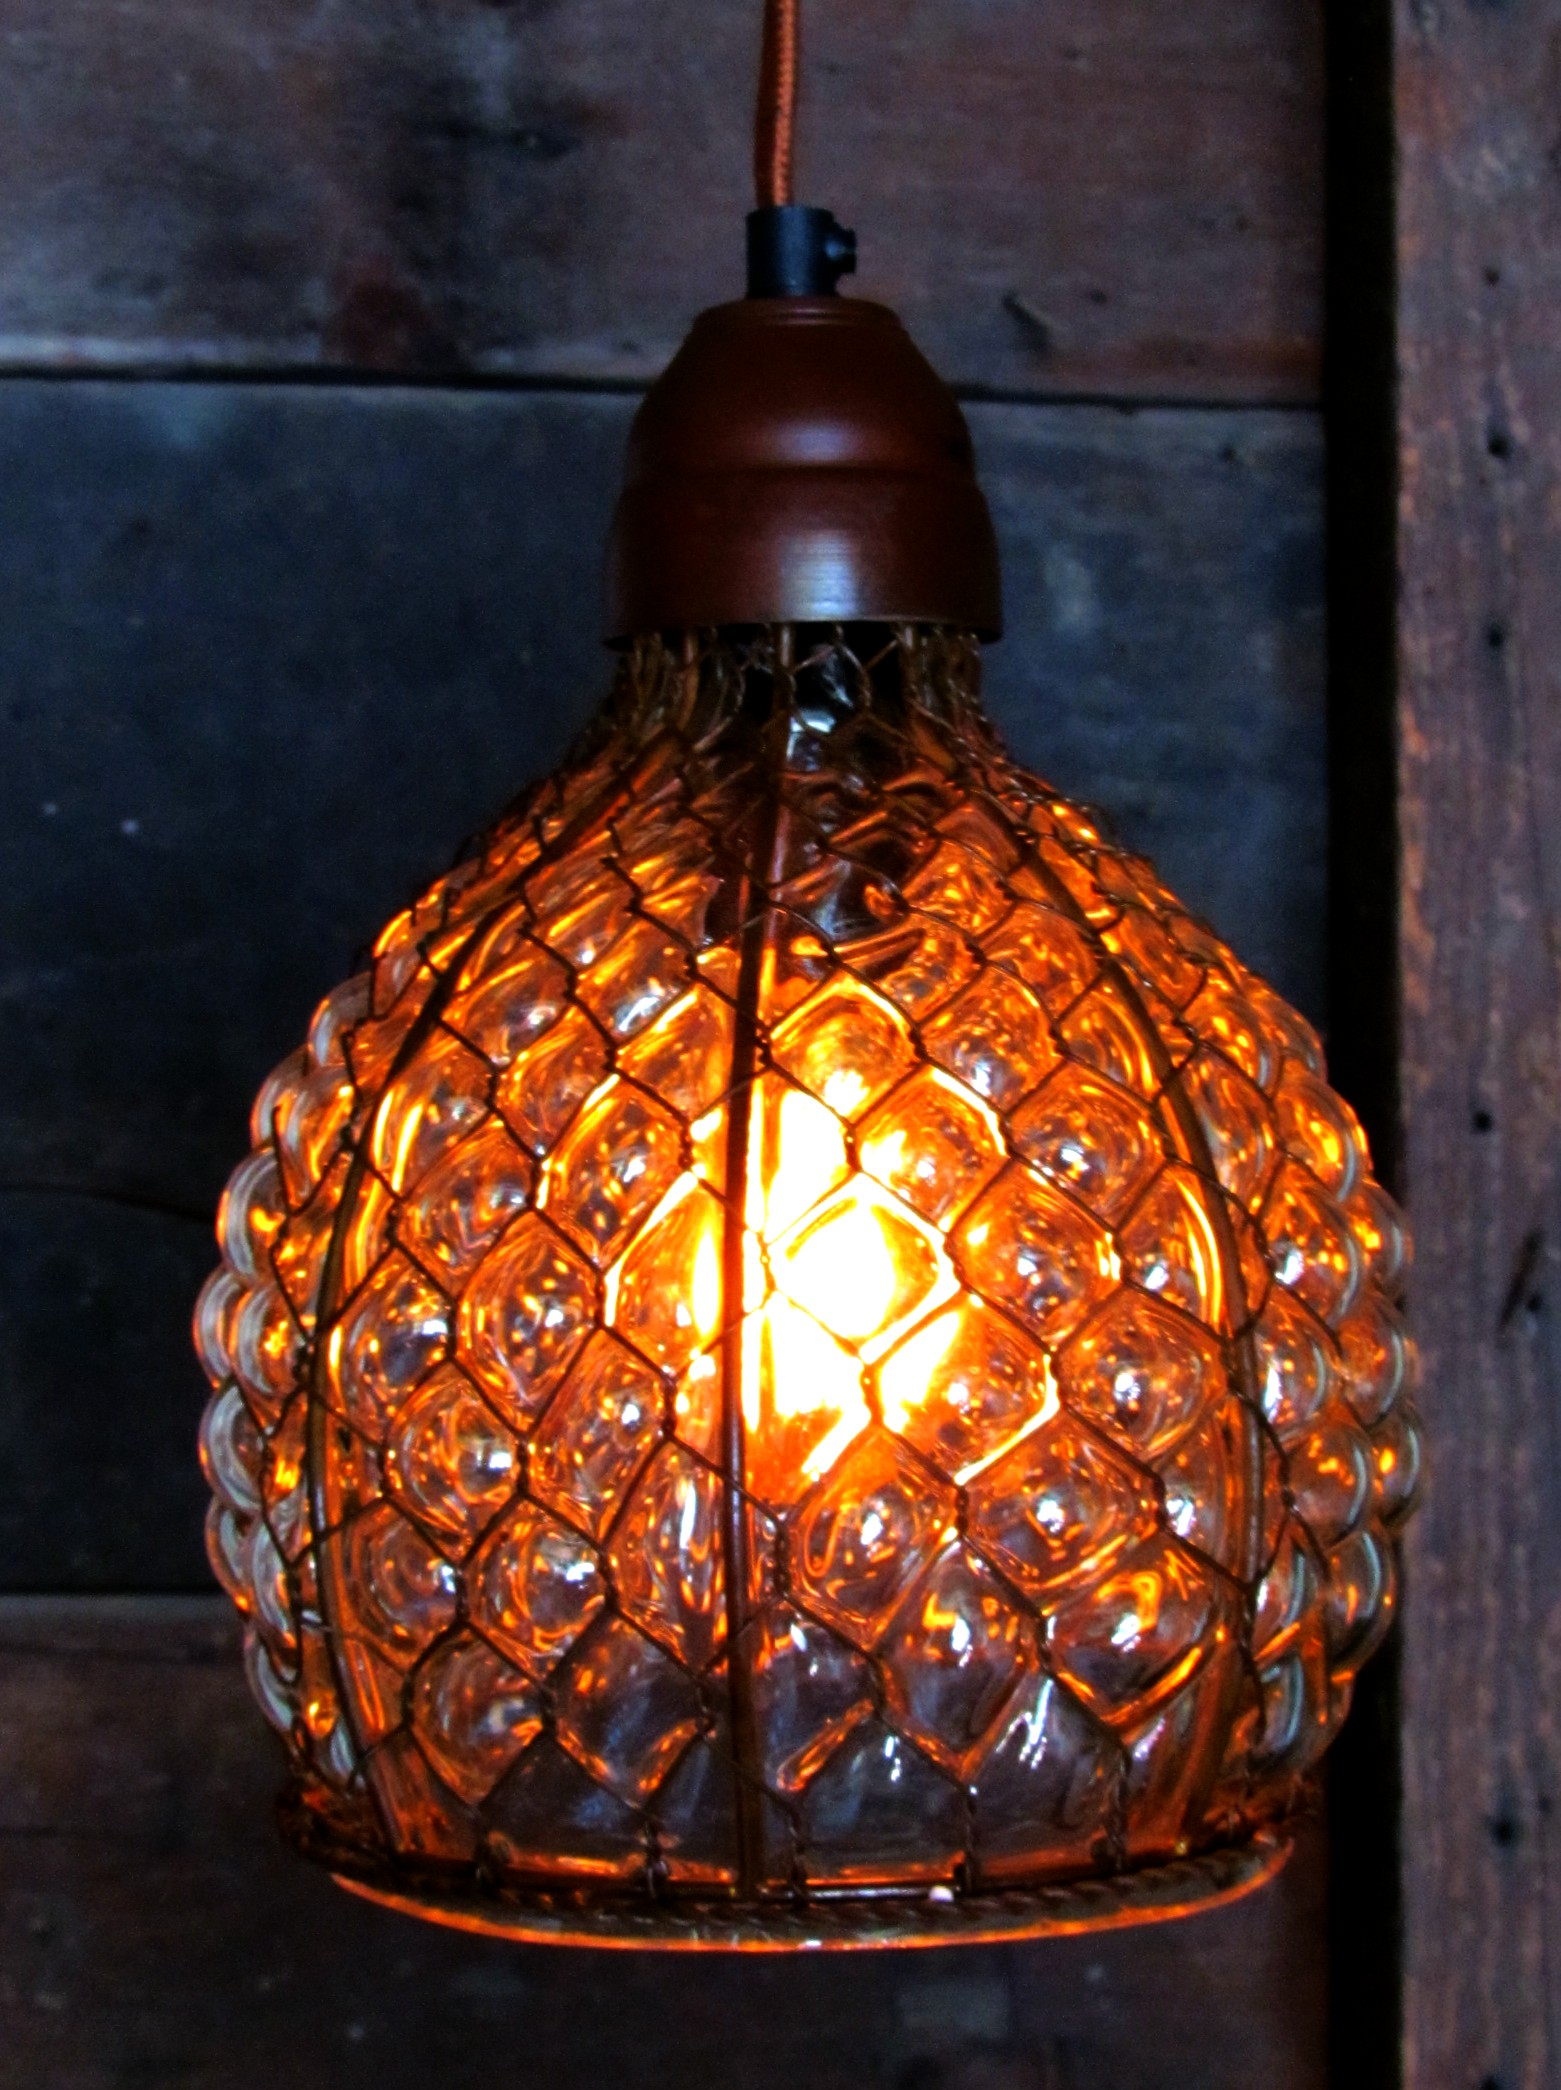 Chicken Wire and Hobnail Glass Pendant Fixture | Tirsah Marie Home ...